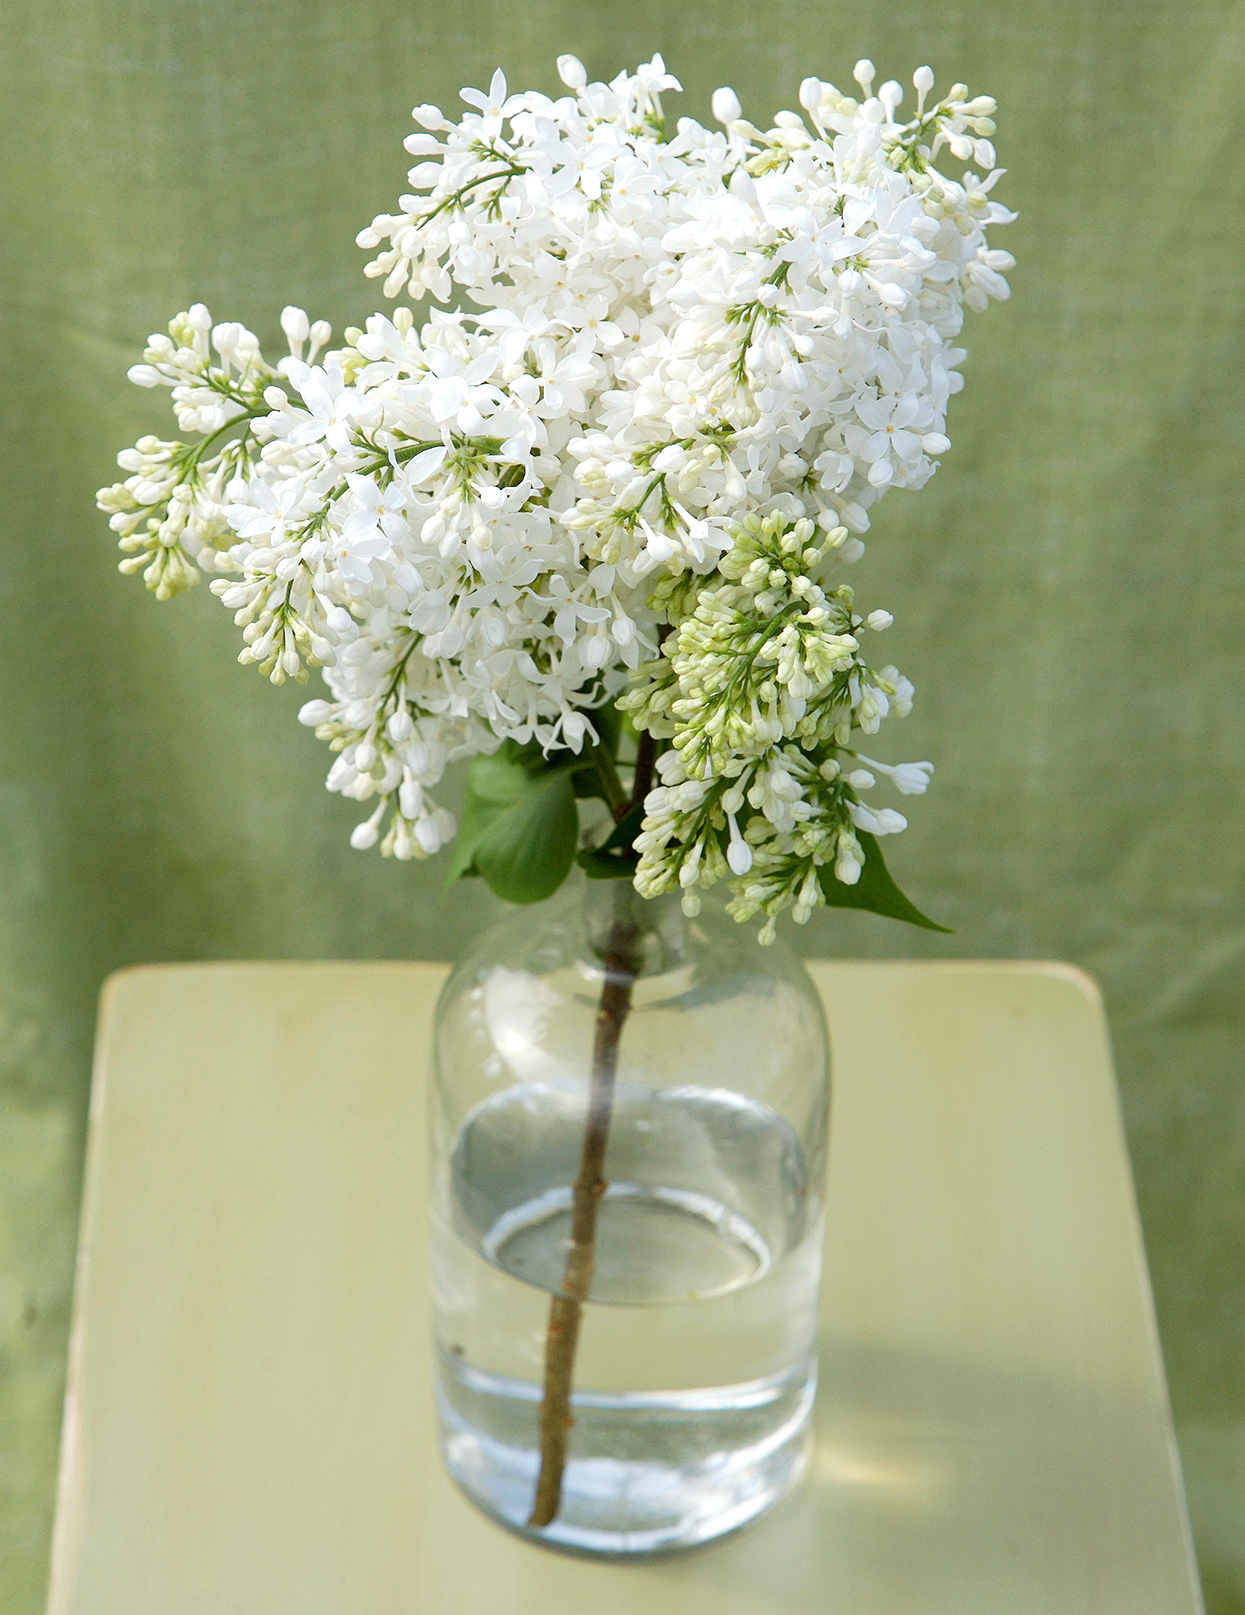 Syringa 'Angel White' lilac blooms in vase